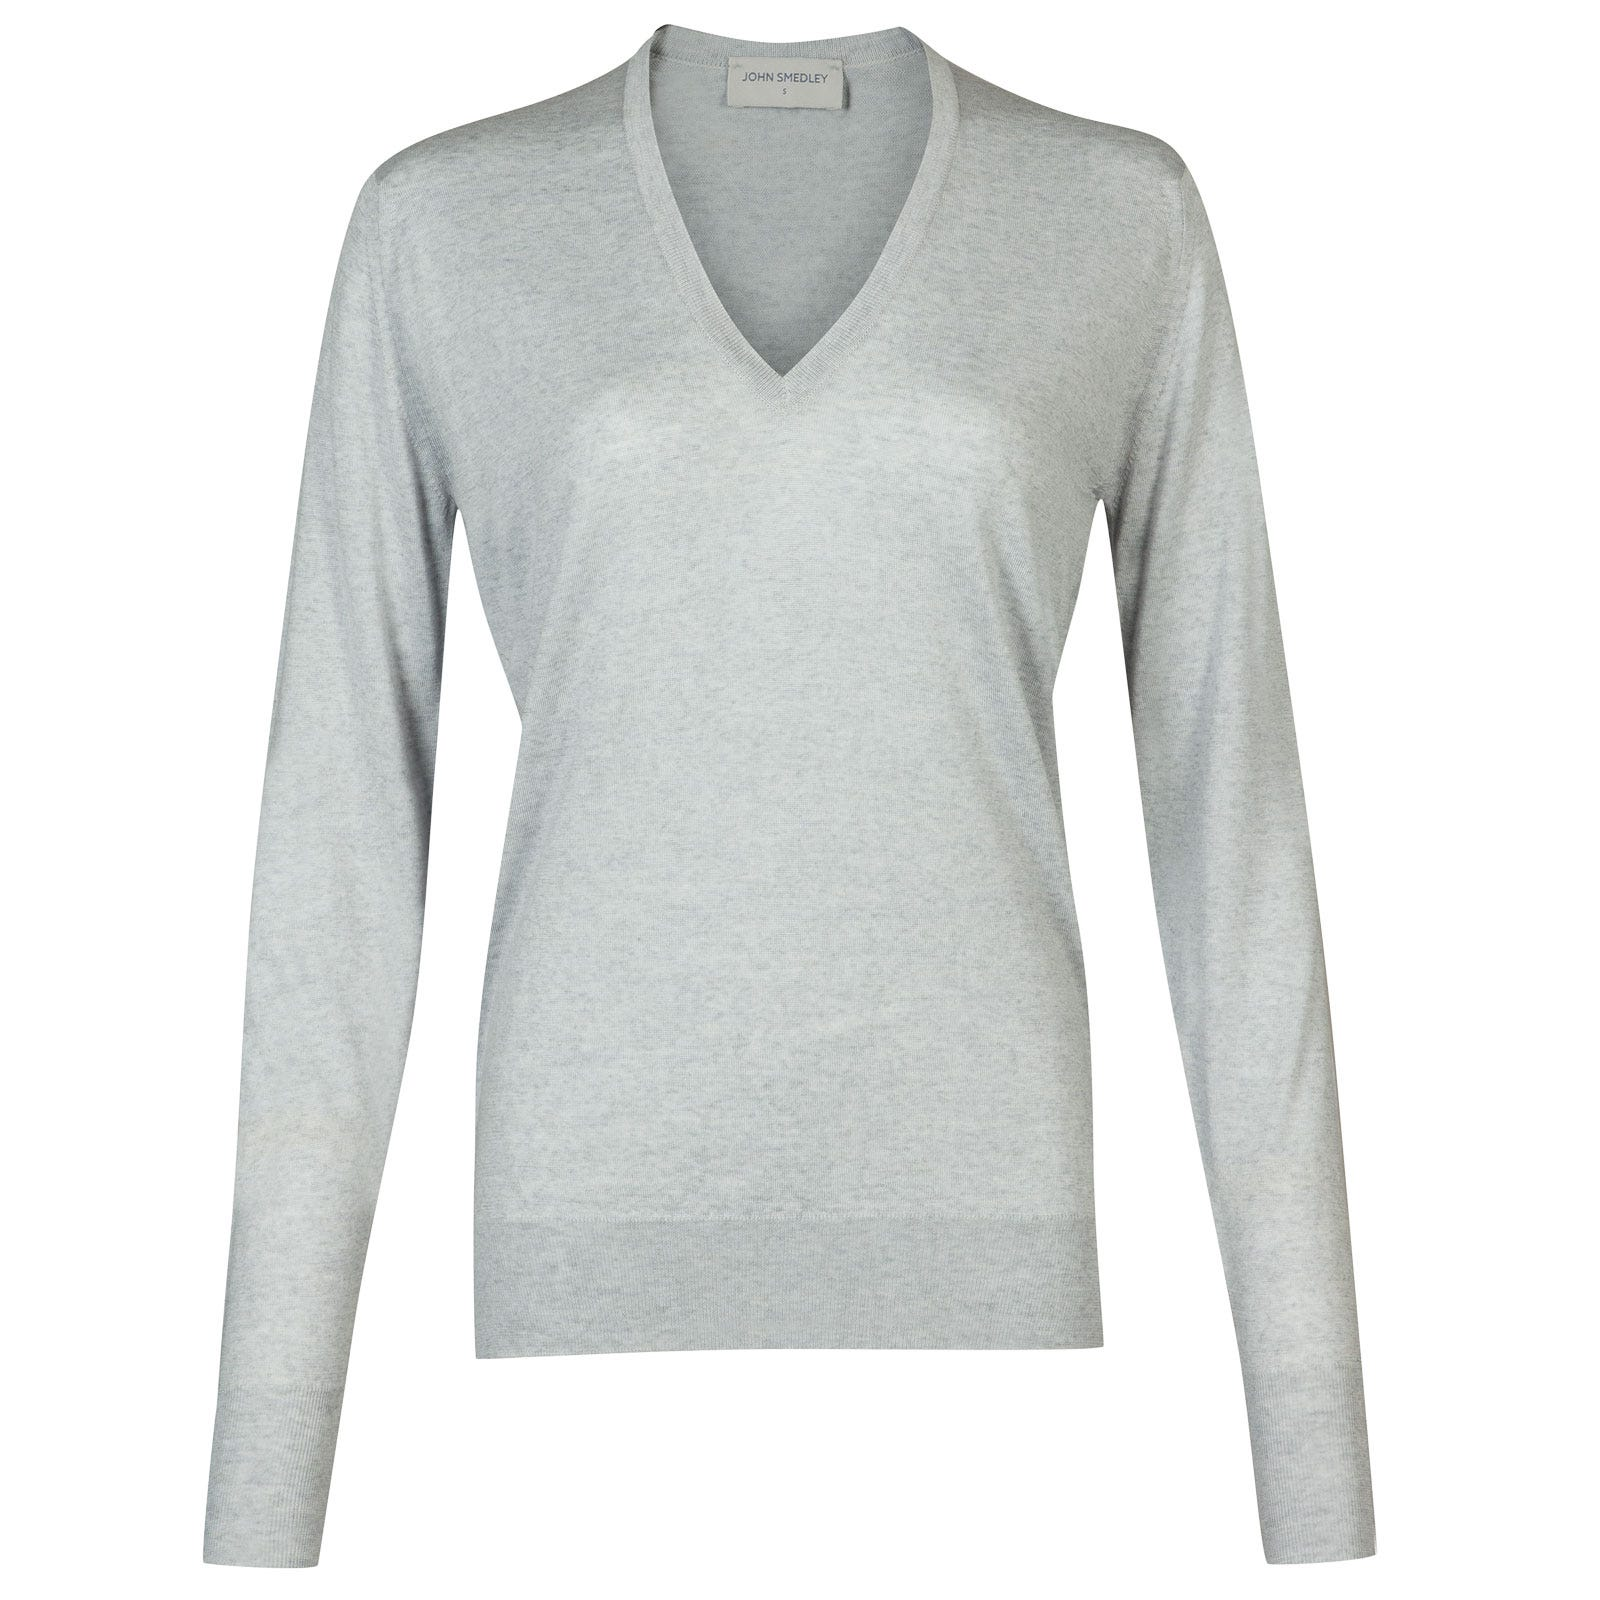 John Smedley Pepin Merino Wool Sweater in Bardot Grey-L